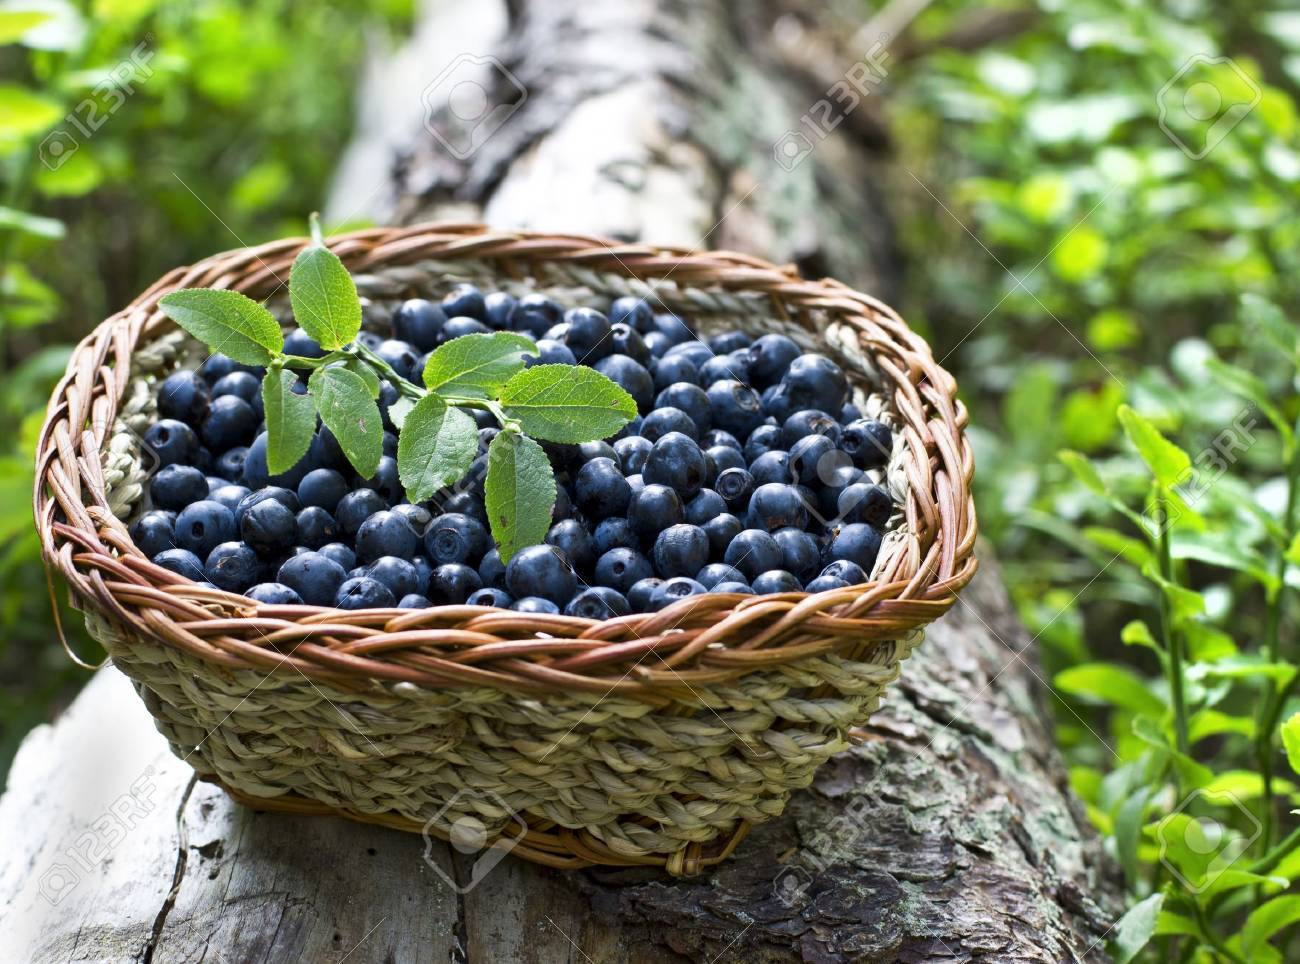 Pictures Of Blueberries In A Basket